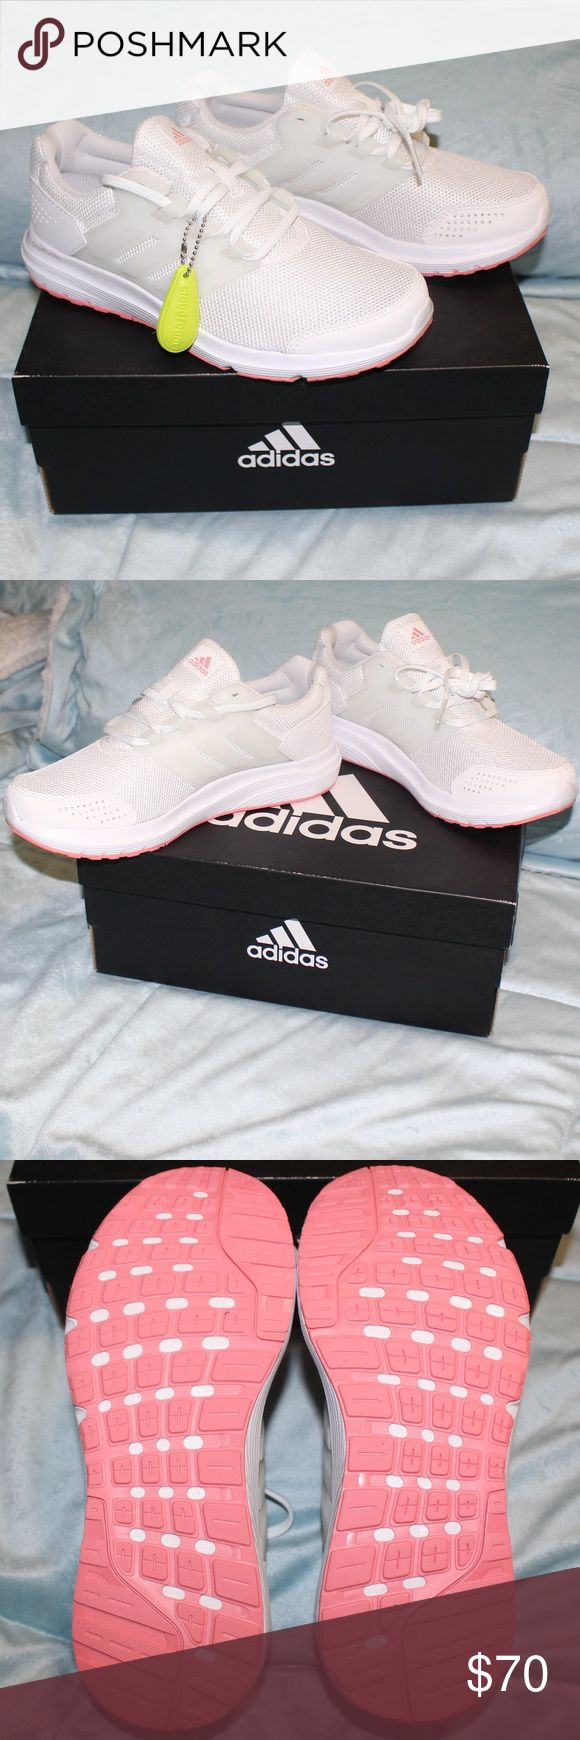 NEW Adidas Cloudfoam Galaxy 4 Running Shoes 7.5 Selling new in the box Adidas Cloudfoam Galaxy 4 Women's Running Shoes. These are white with pink accents (on the bottom of the shoe & in the logo on the tongue) These Sneakers are size 7.5. These are ultra comfortable & super cute! Selling other sizes on other listings. I have previously sold this size (see other listing) and they were popular so I added more! Multiple are listed - price is for each indivually.  adidas sneakers, adidas shoes…